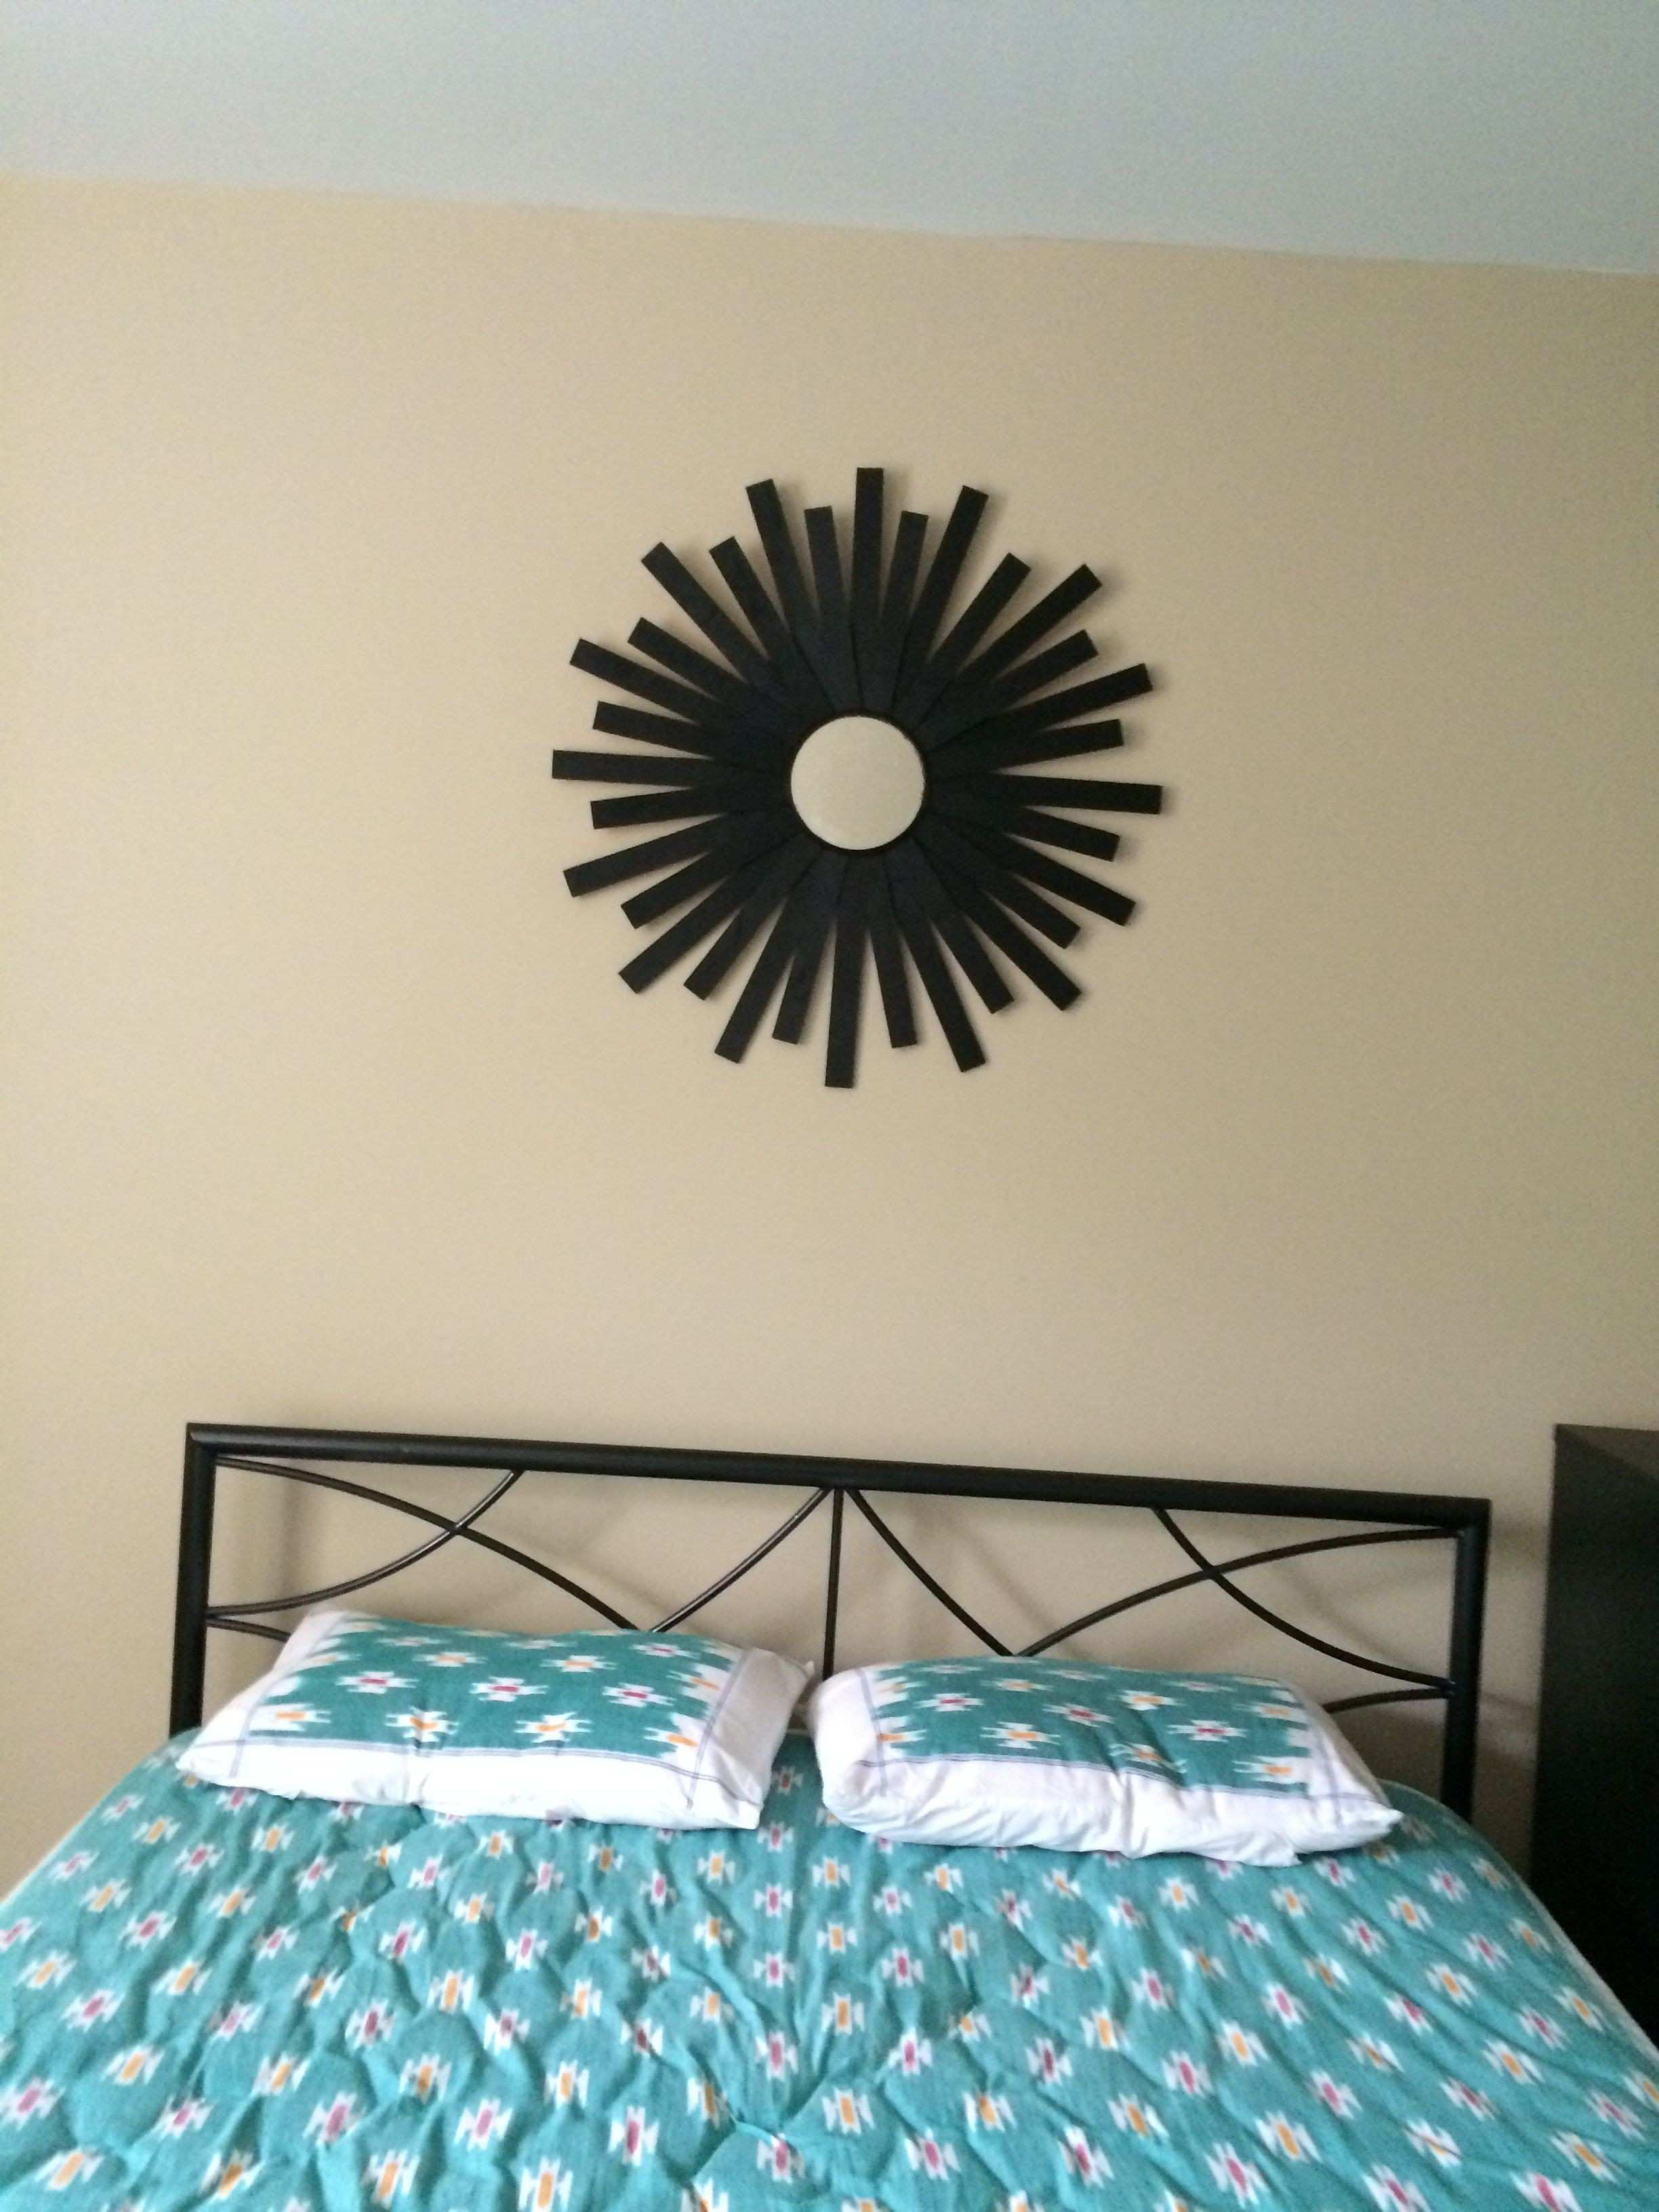 Sunburst mirror in my bedroom MY HobbyLobby Pinterest